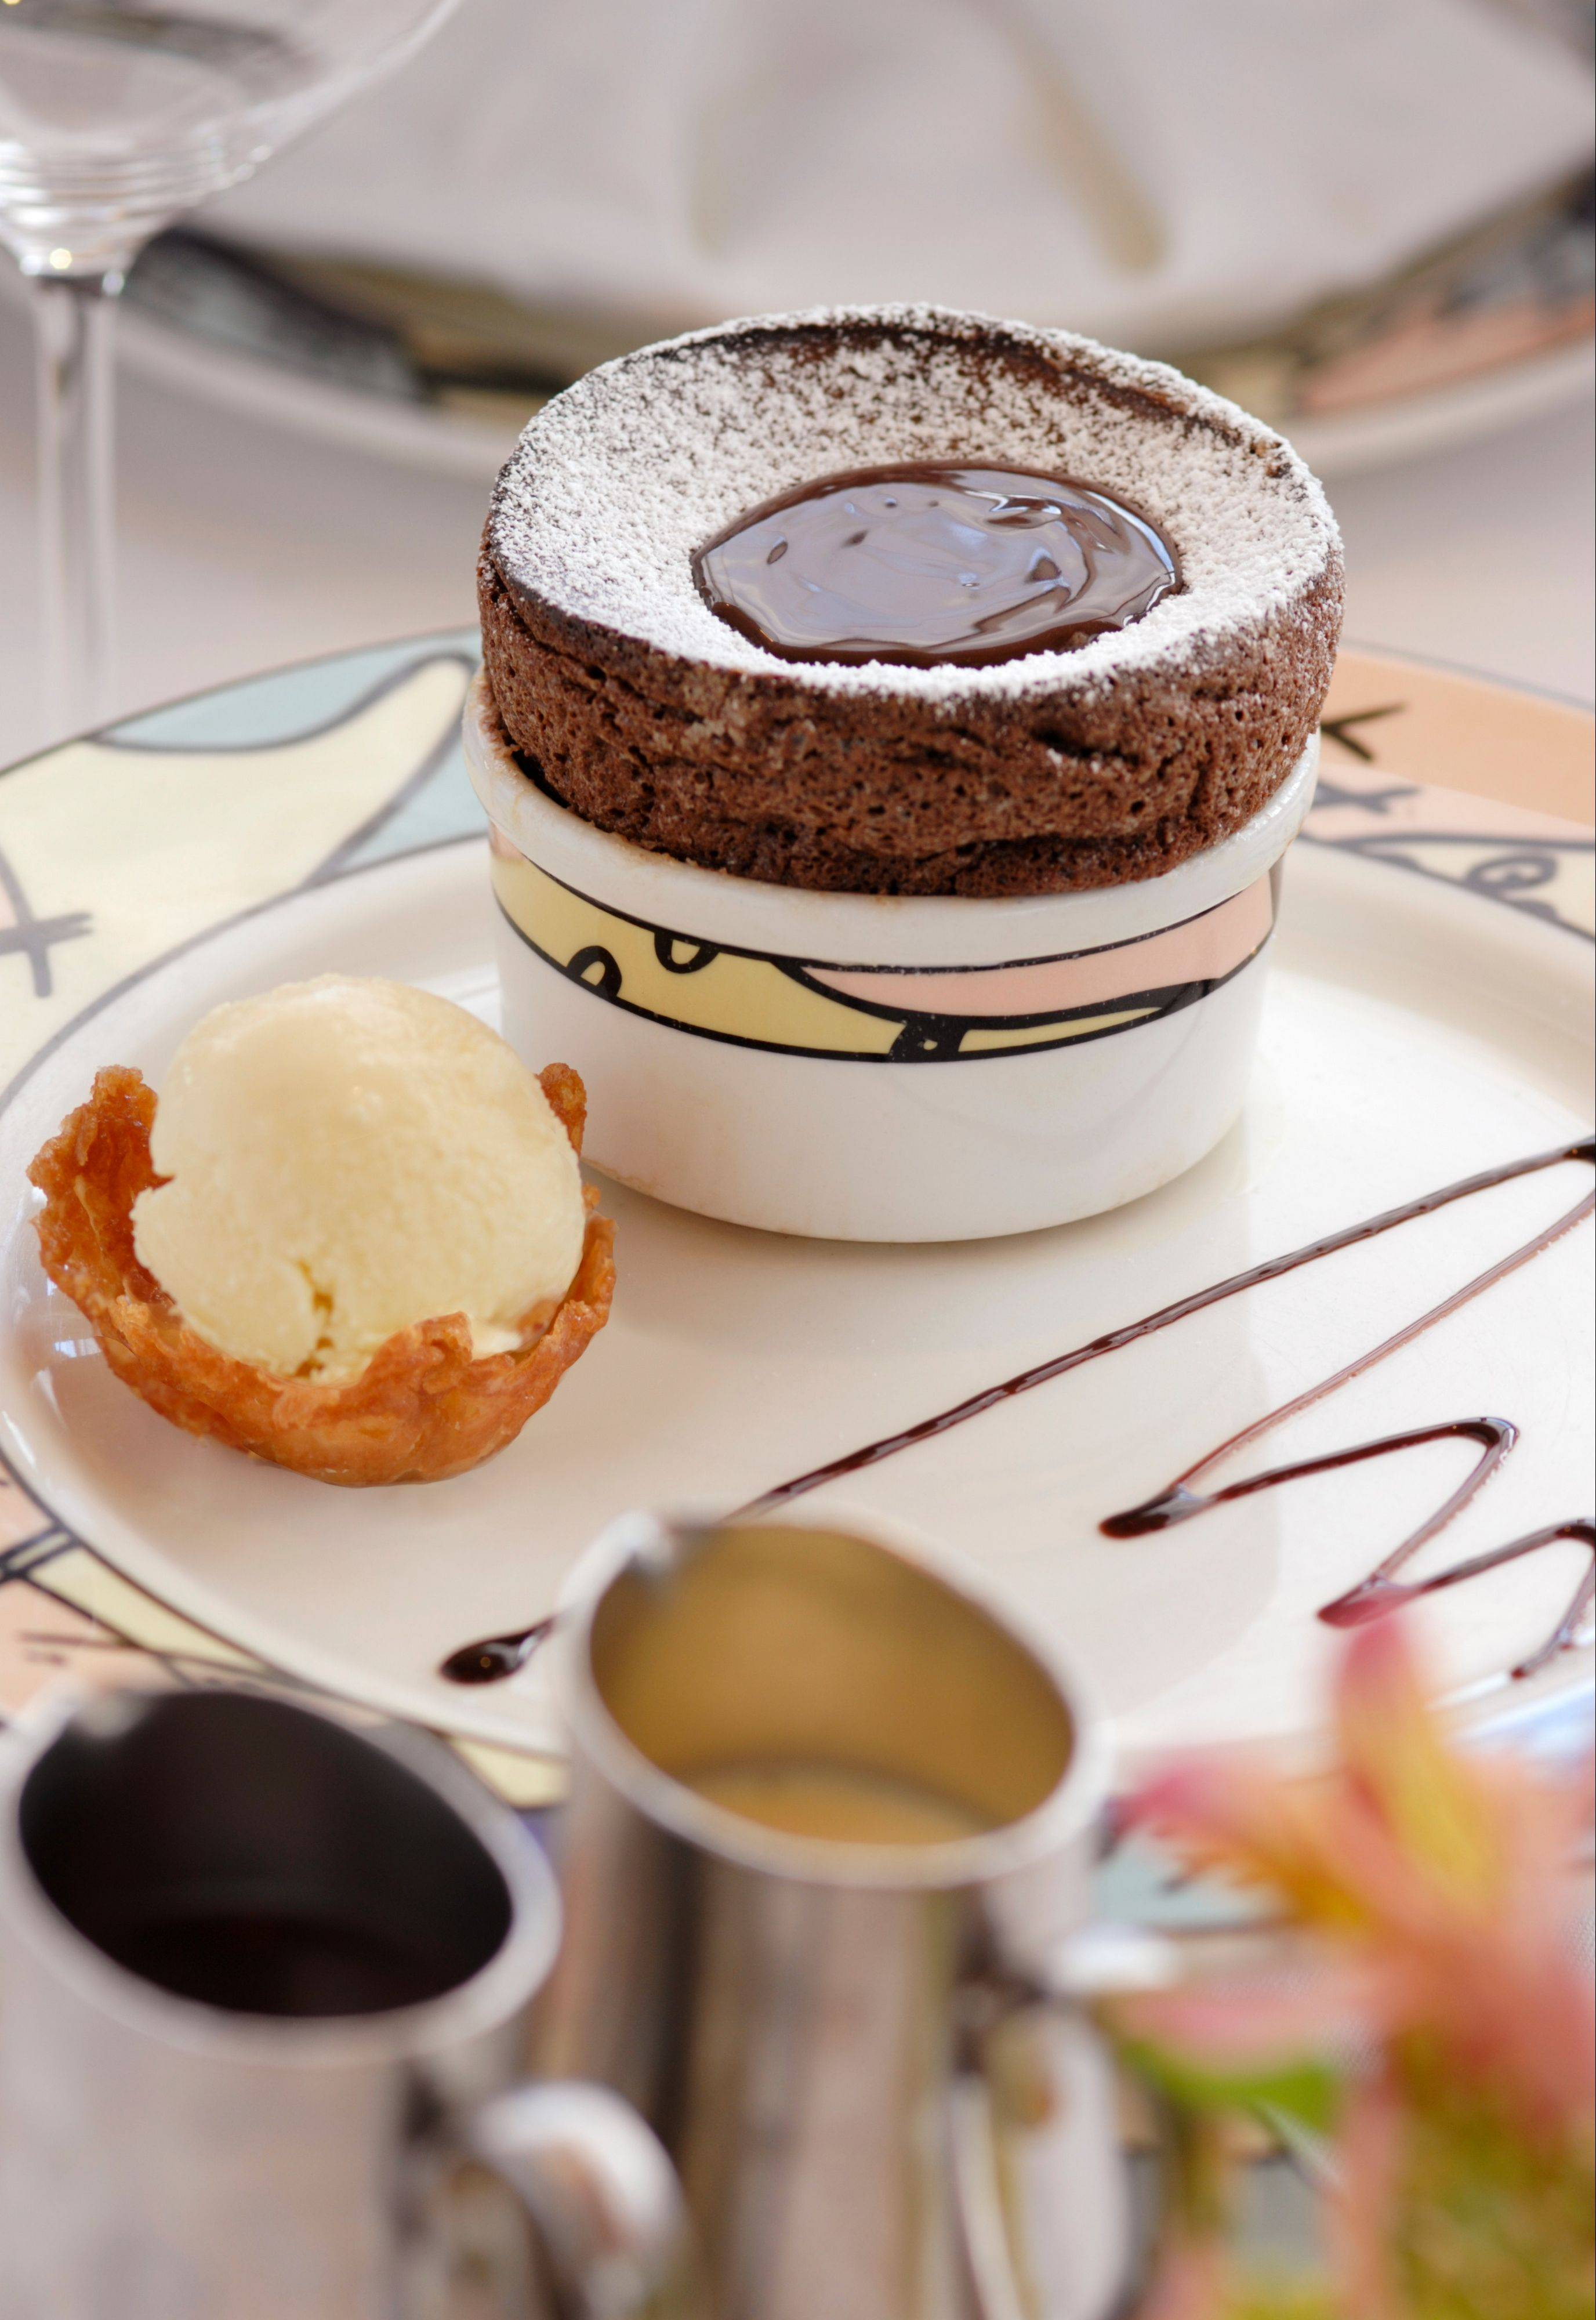 Culinary adventures: Souffle recipe treasured souvenir from Mediterranean cruise